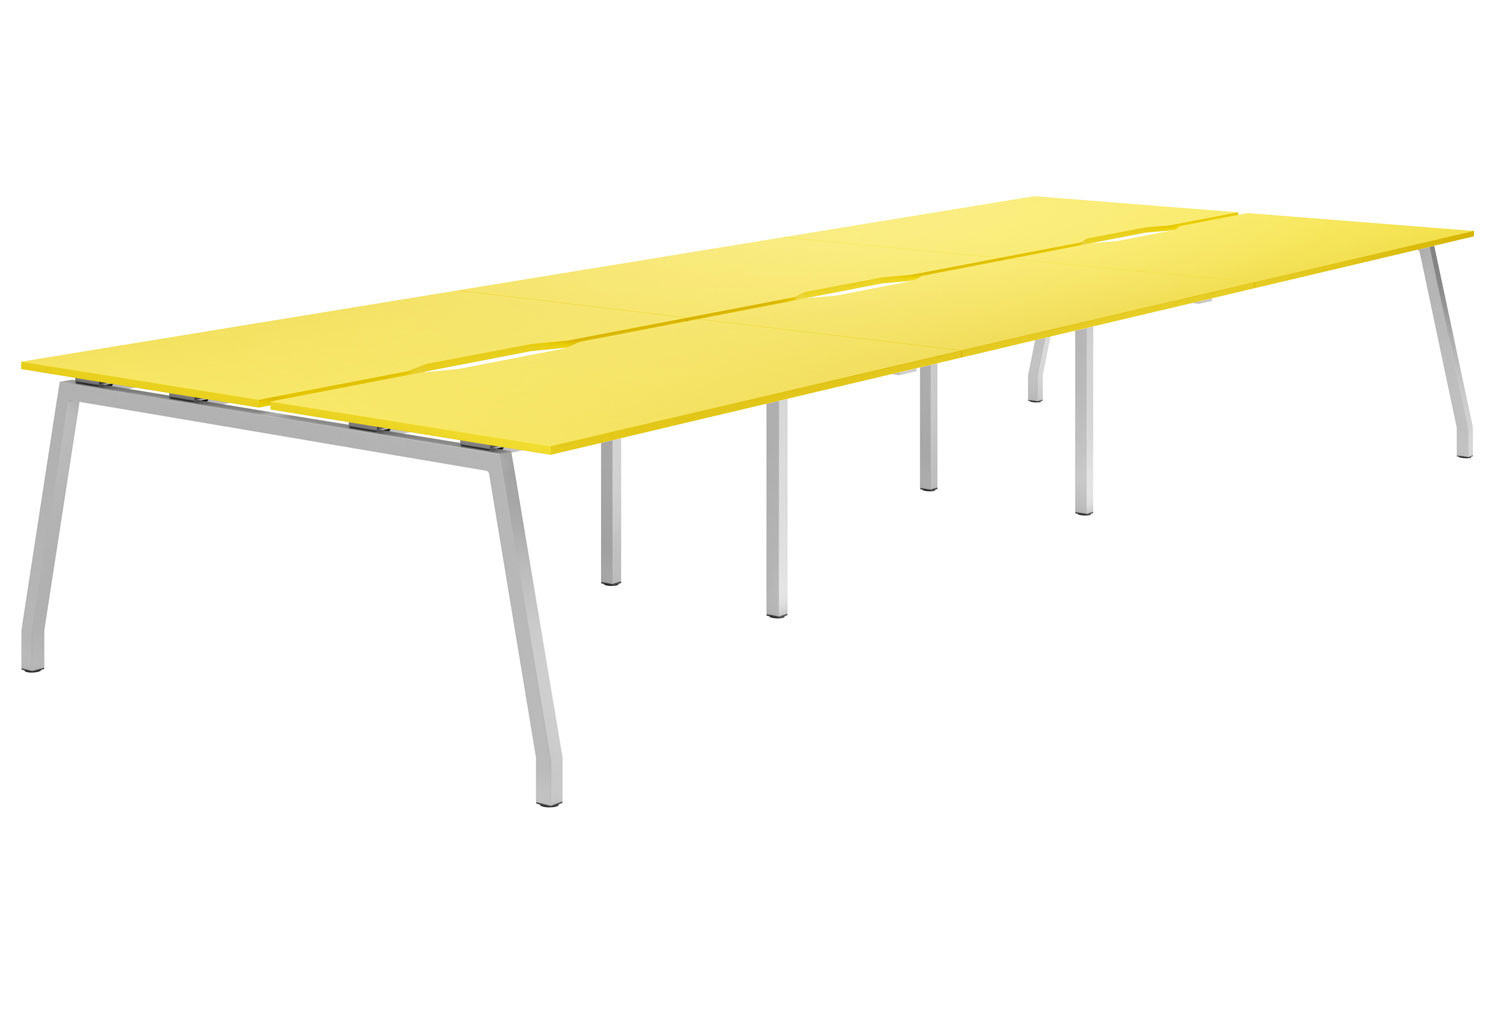 Campos A-Frame 6 Person Back To Back Bench Desk (Yellow)